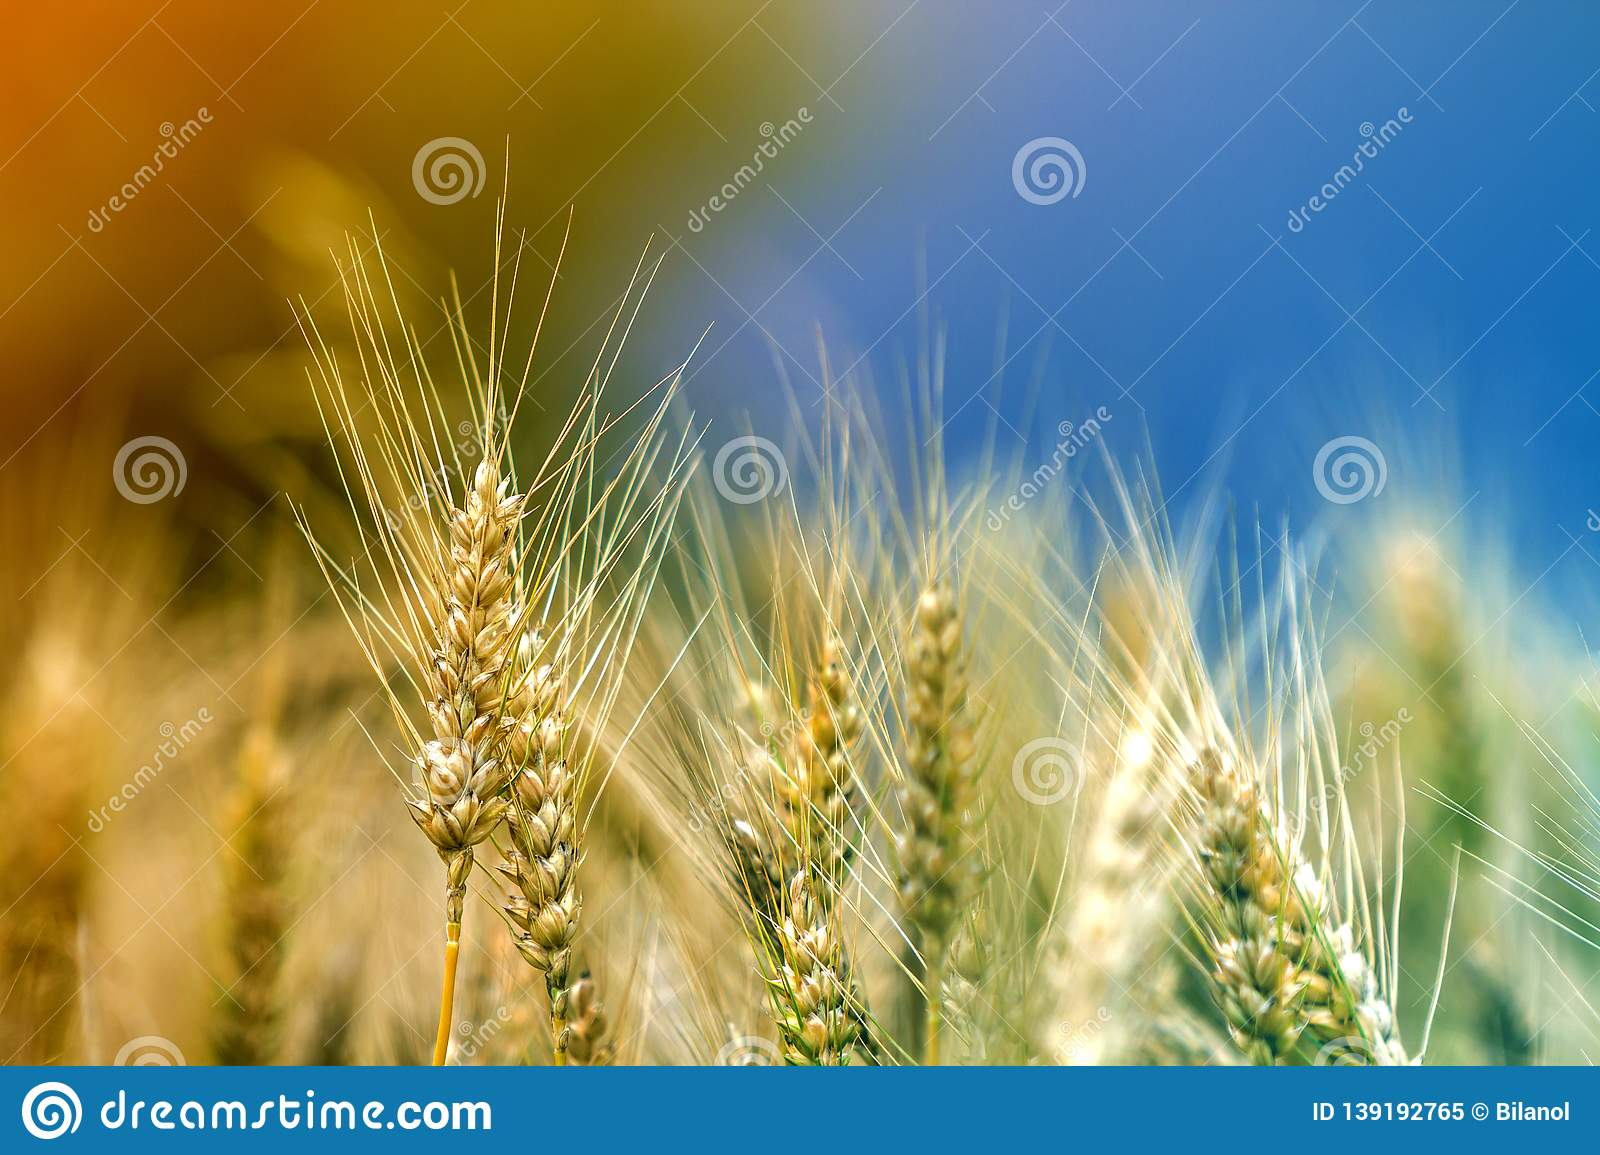 Close Up Of Warm Colored Golden Yellow Ripe Wheat Heads On